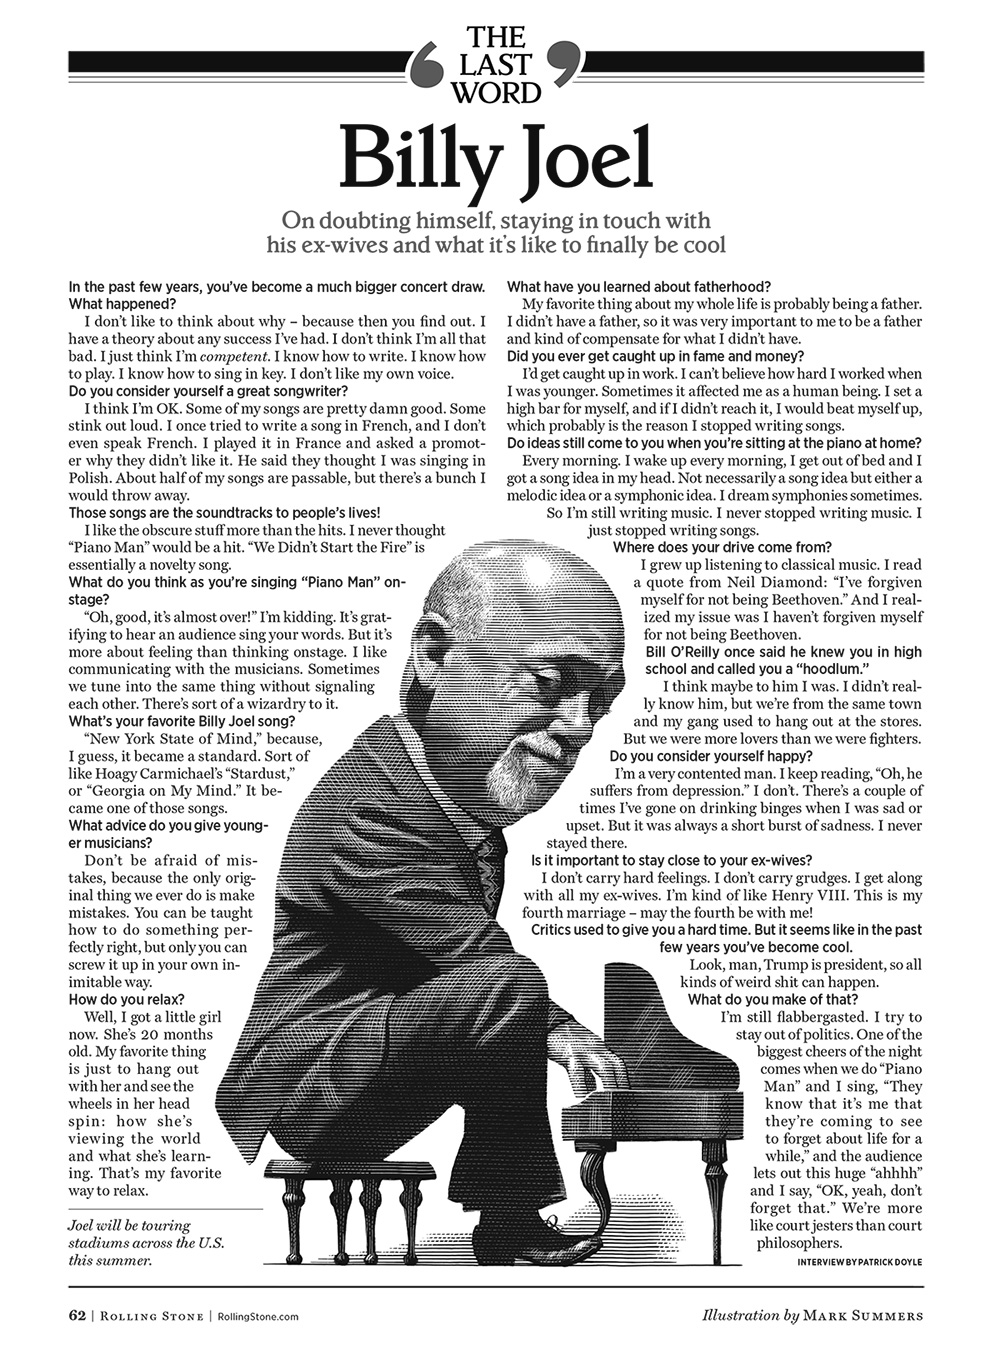 Billy Joel 'The Last Word' Rolling Stone Interview